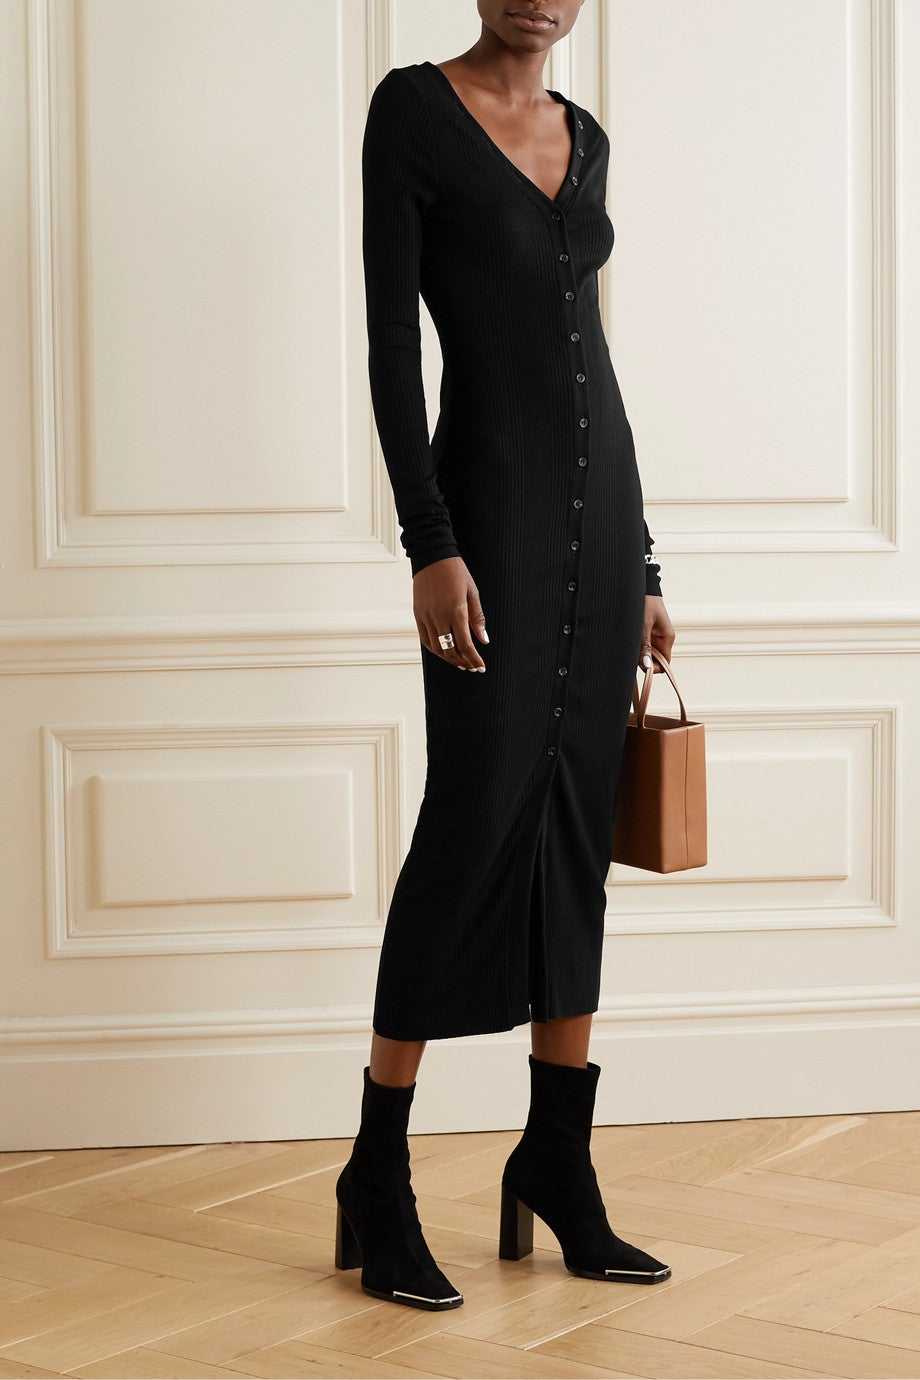 The Range Division Ribbed-Knit Midi Dress